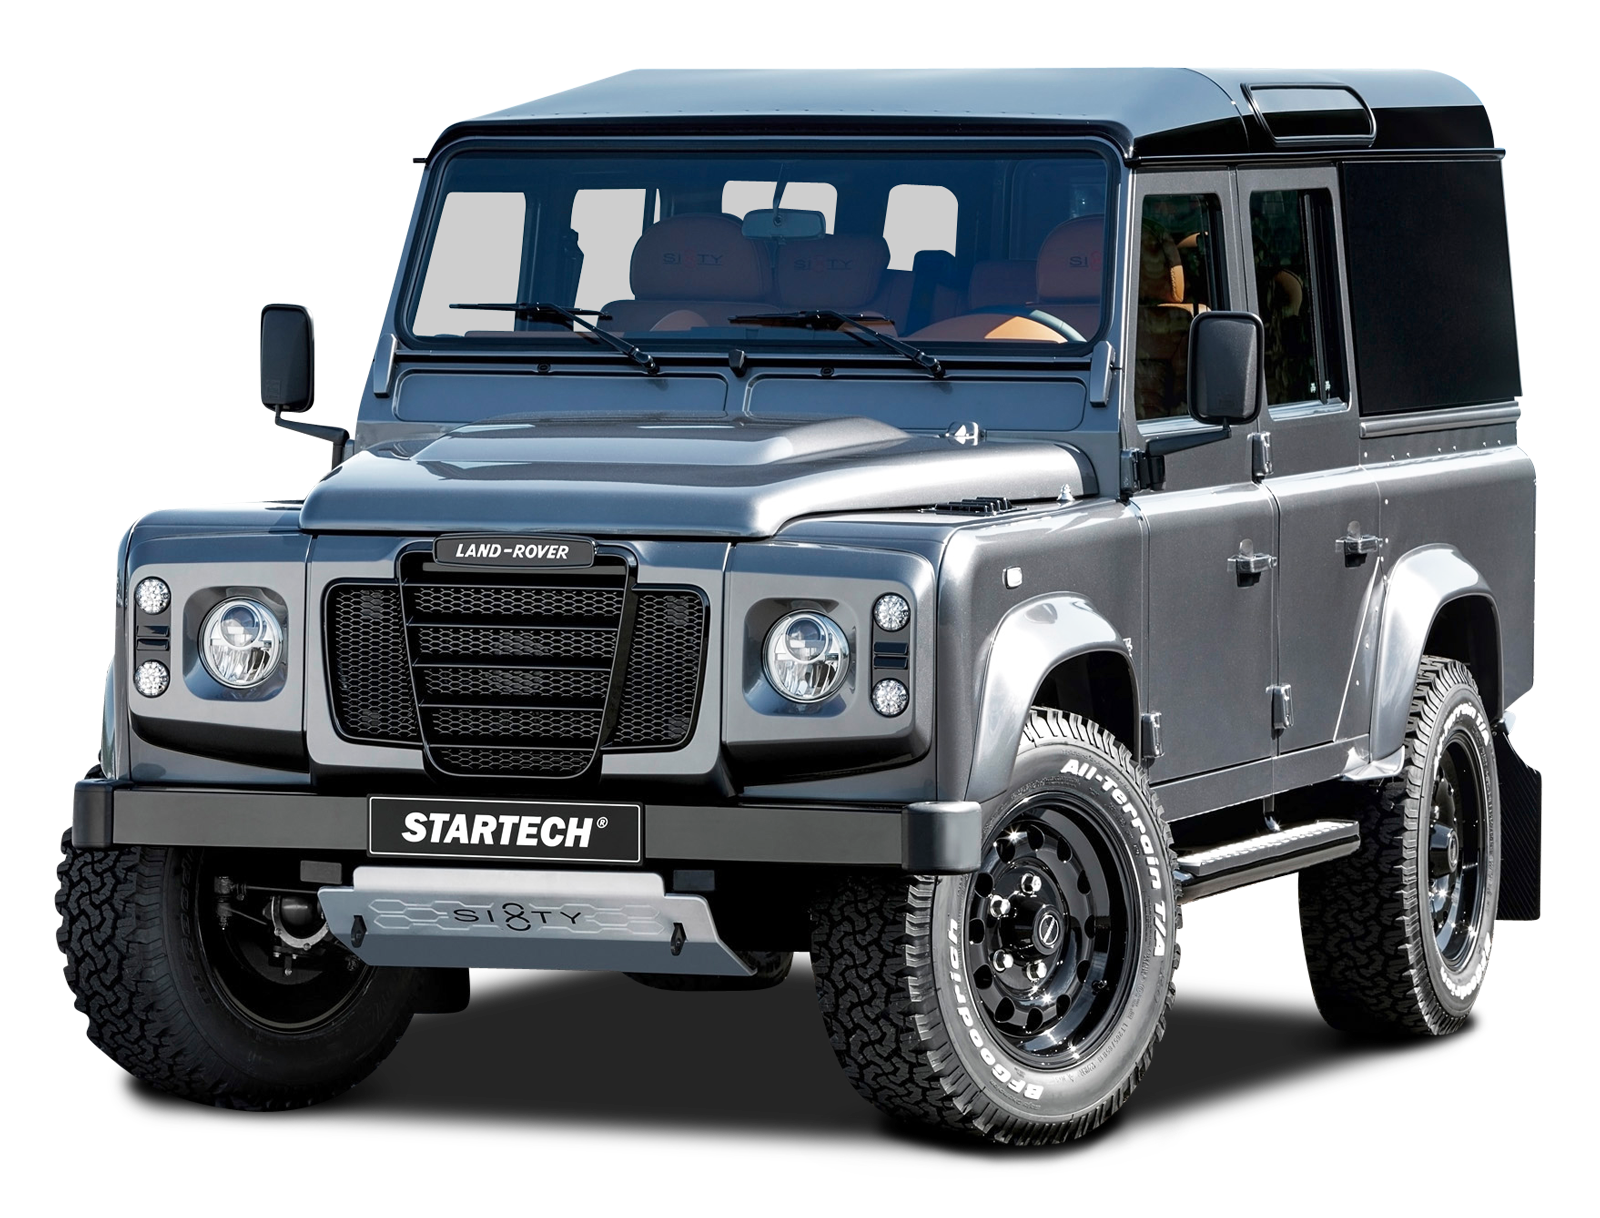 Startech Land Rover Defender Sixty8 Car